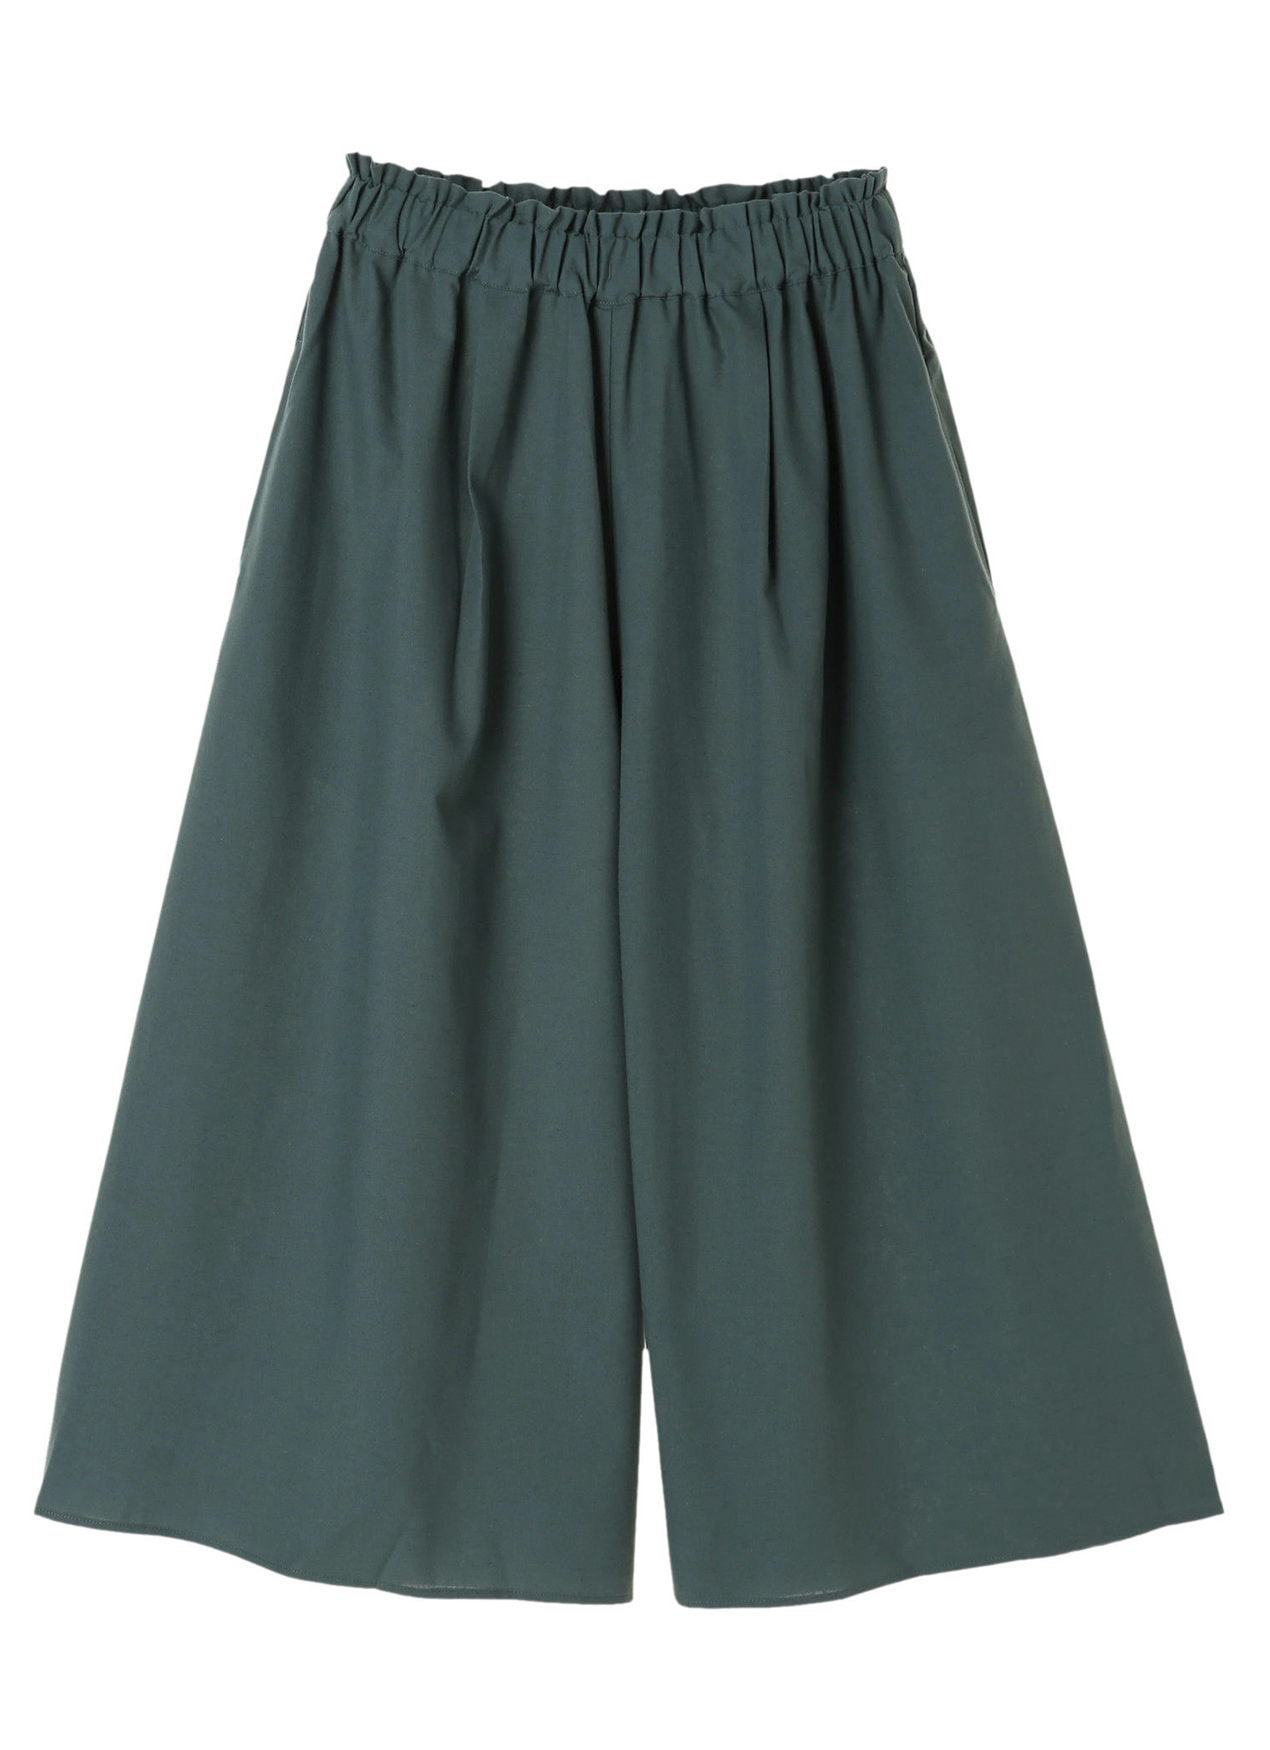 Earth, Music & Ecology Tami Pants - Green